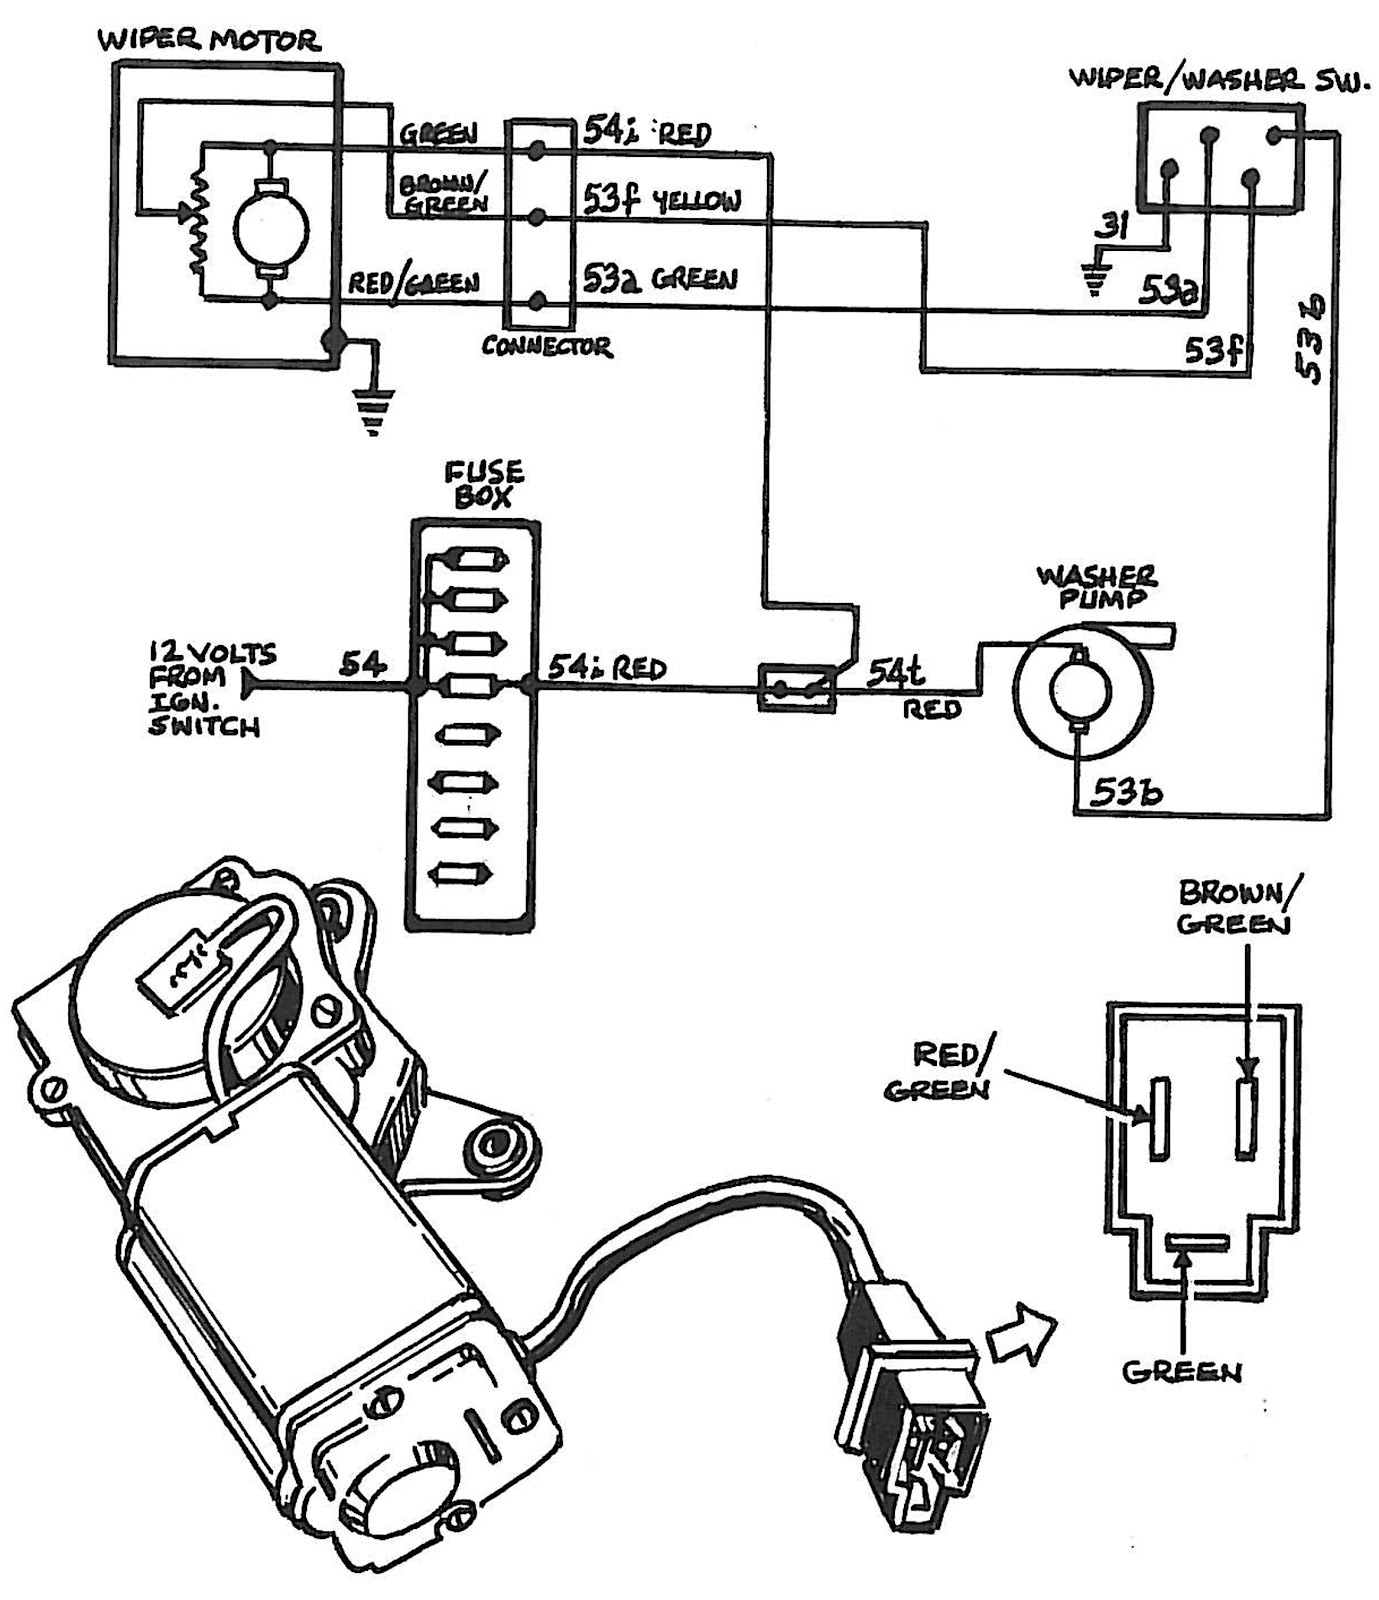 Discussion T24957 ds624347 in addition Chevrolet Wiper Wiring Diagram together with T22082412 Honda foreman es 450 no 4 wheel drive as well 2014 Ford E350 Fuse Box together with Case 480 580e Hydraulic Pump. on e 450 engine diagram